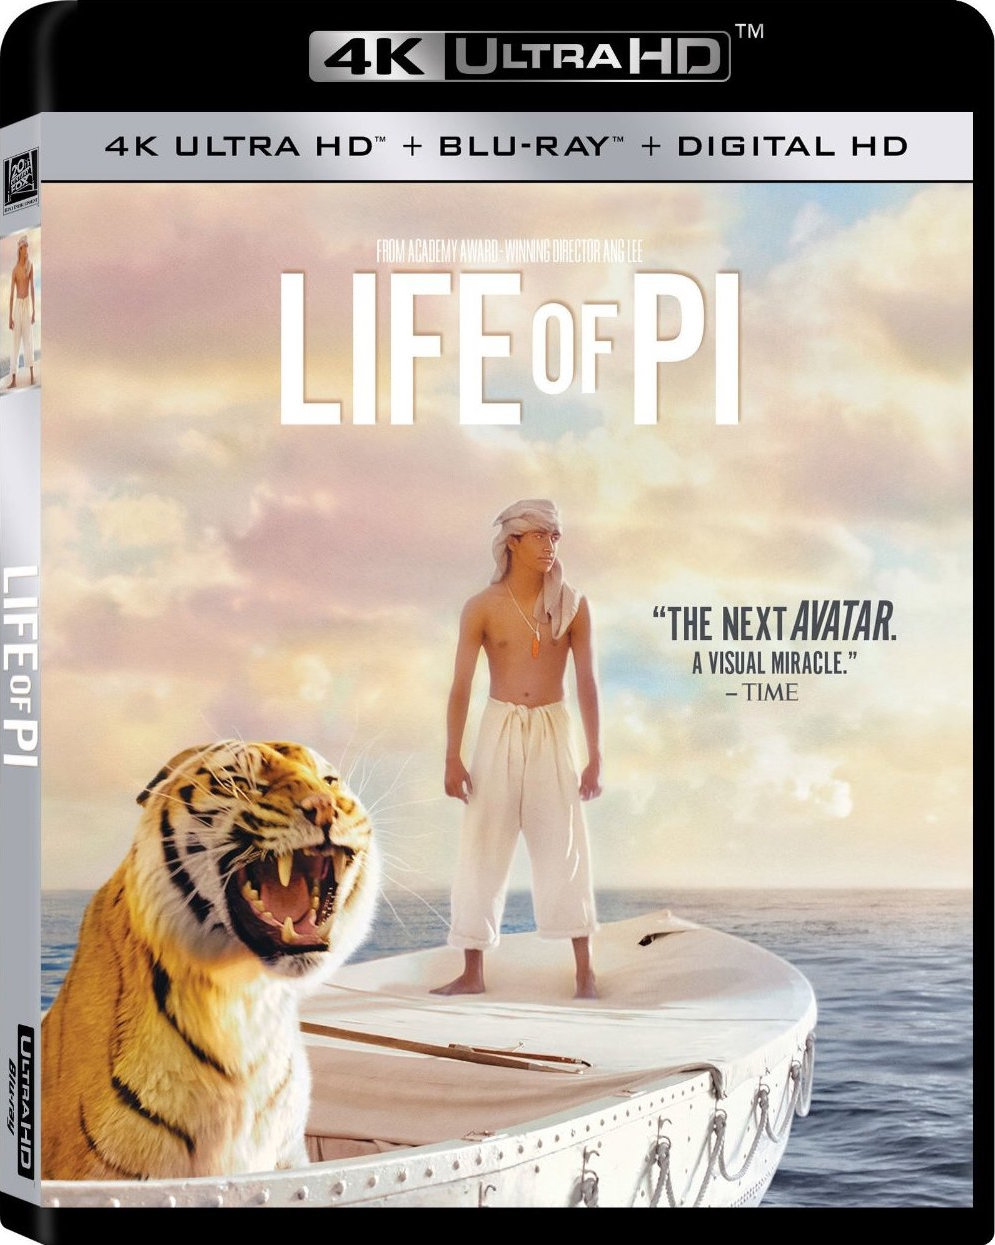 Life of Pi 2012 4K Ultra HD Blu-Ray